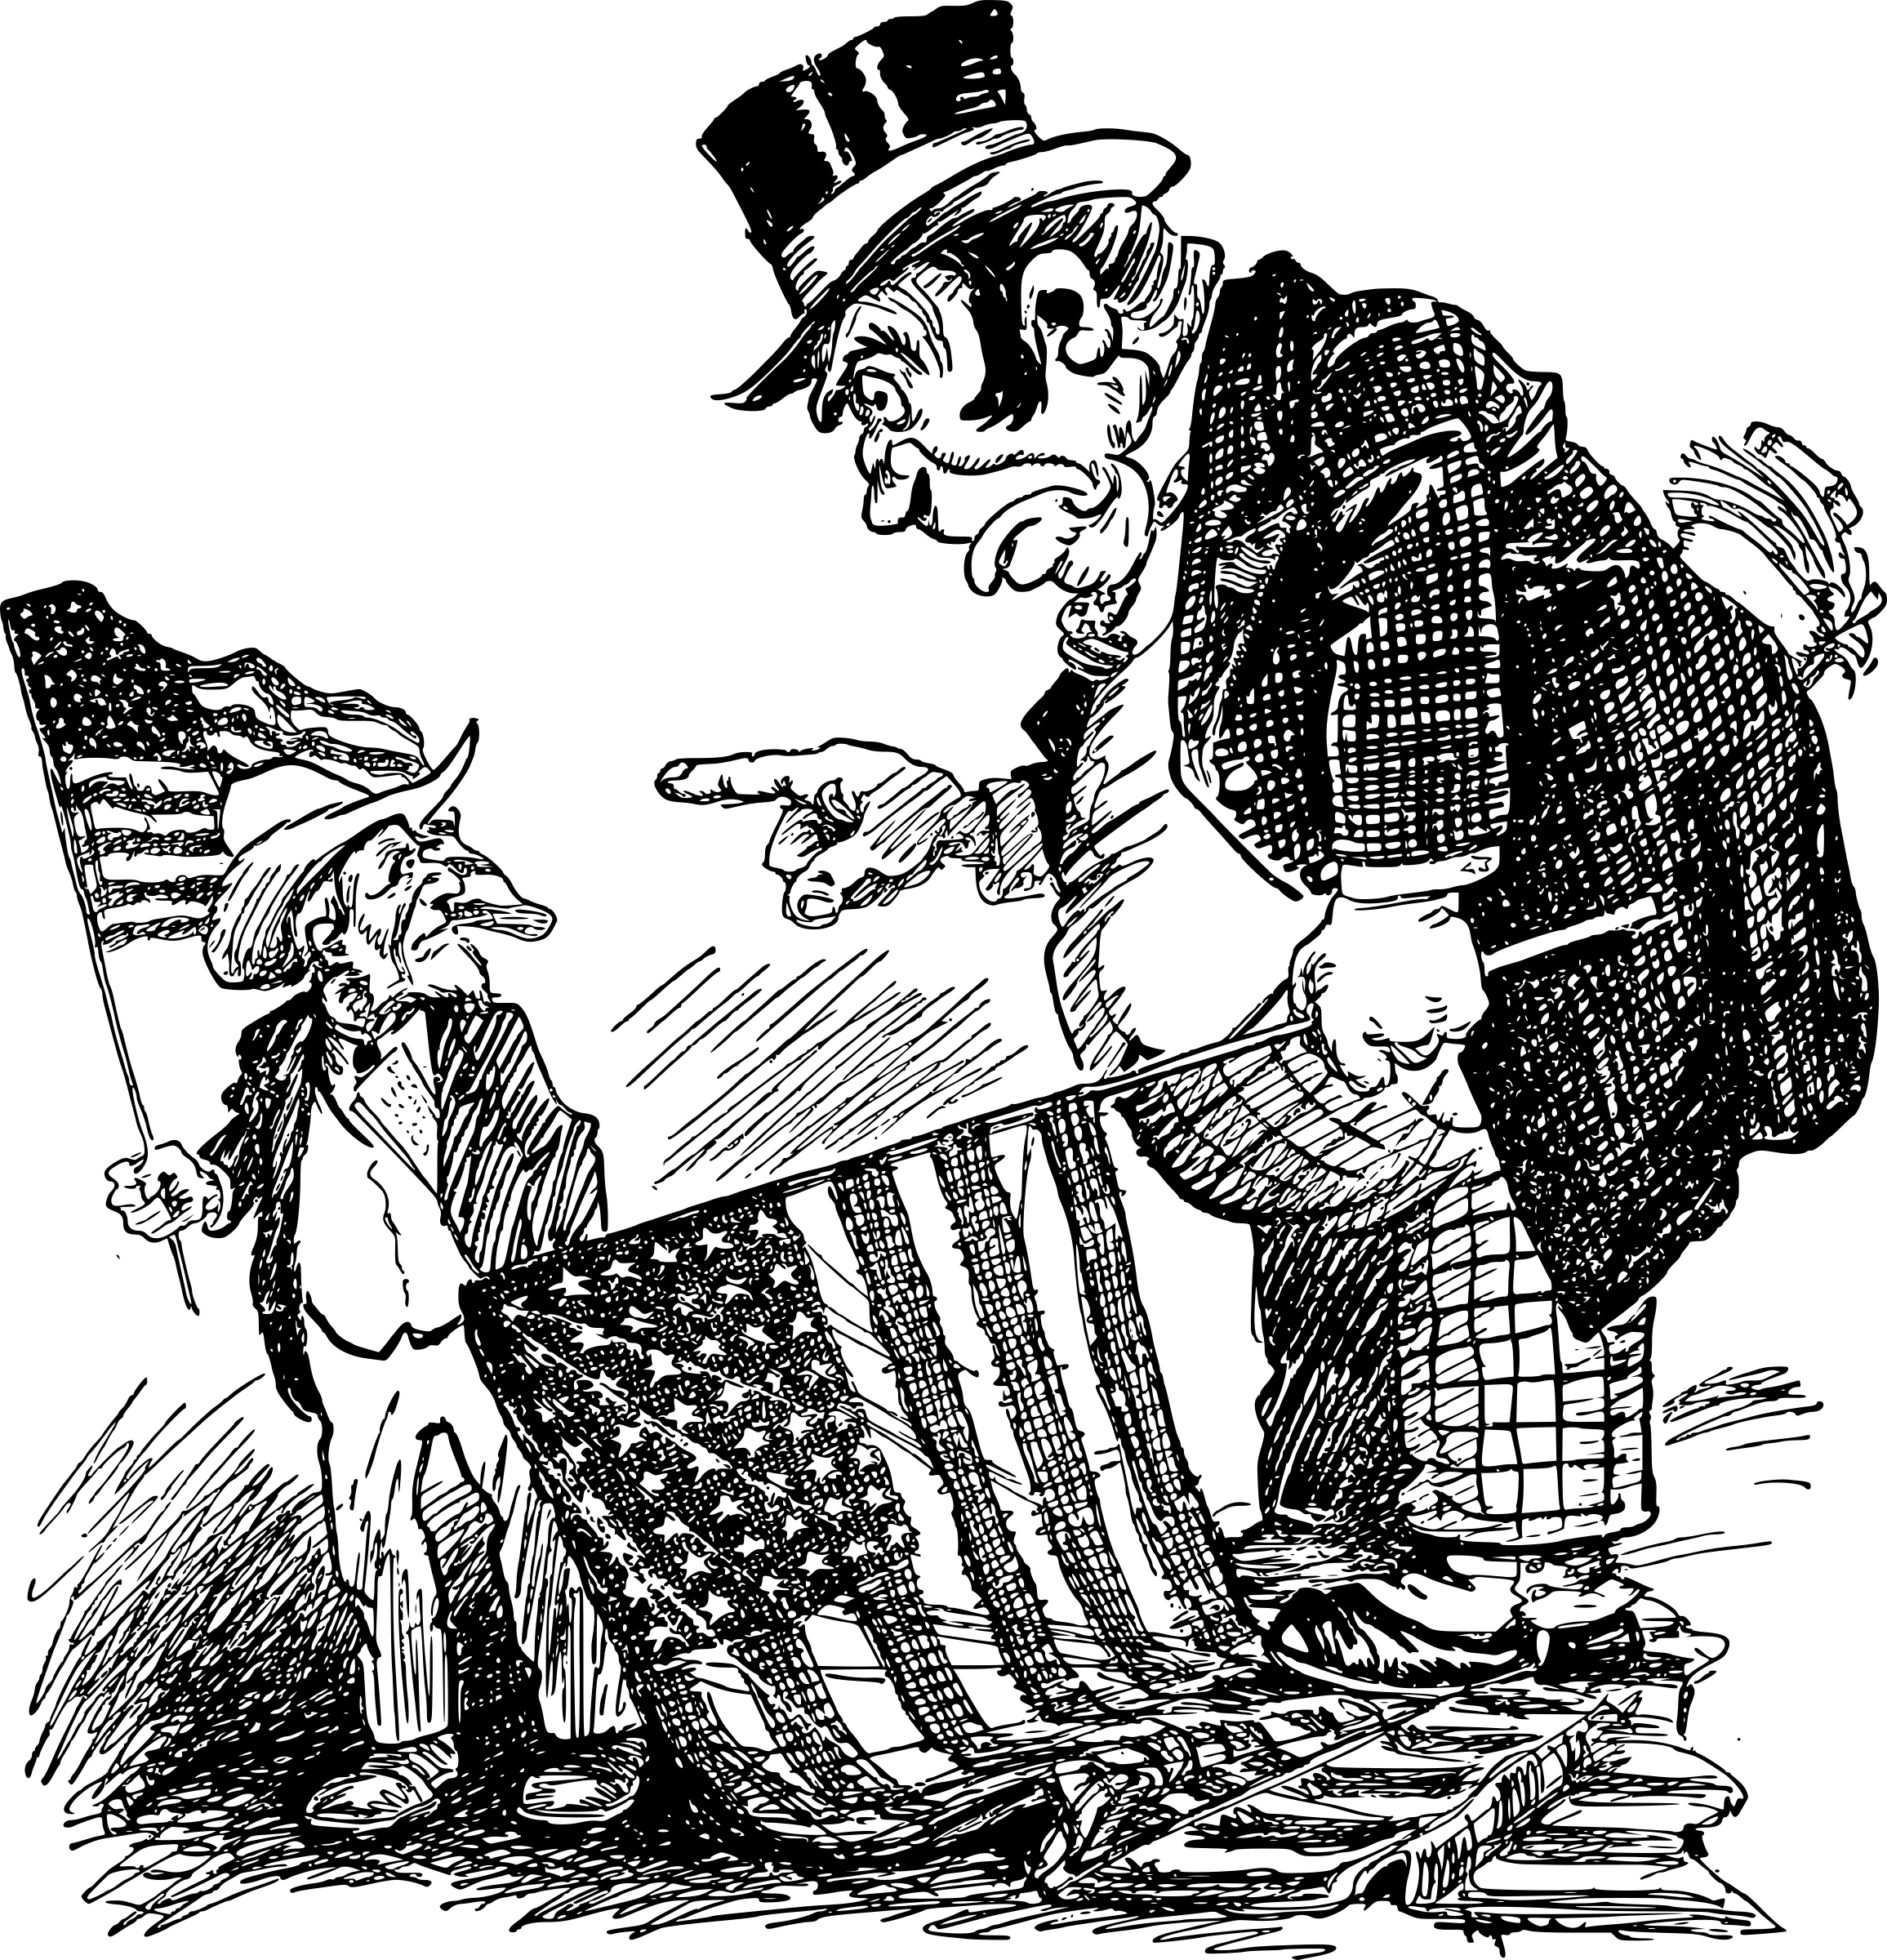 Fat clipart large man. Big little flags image